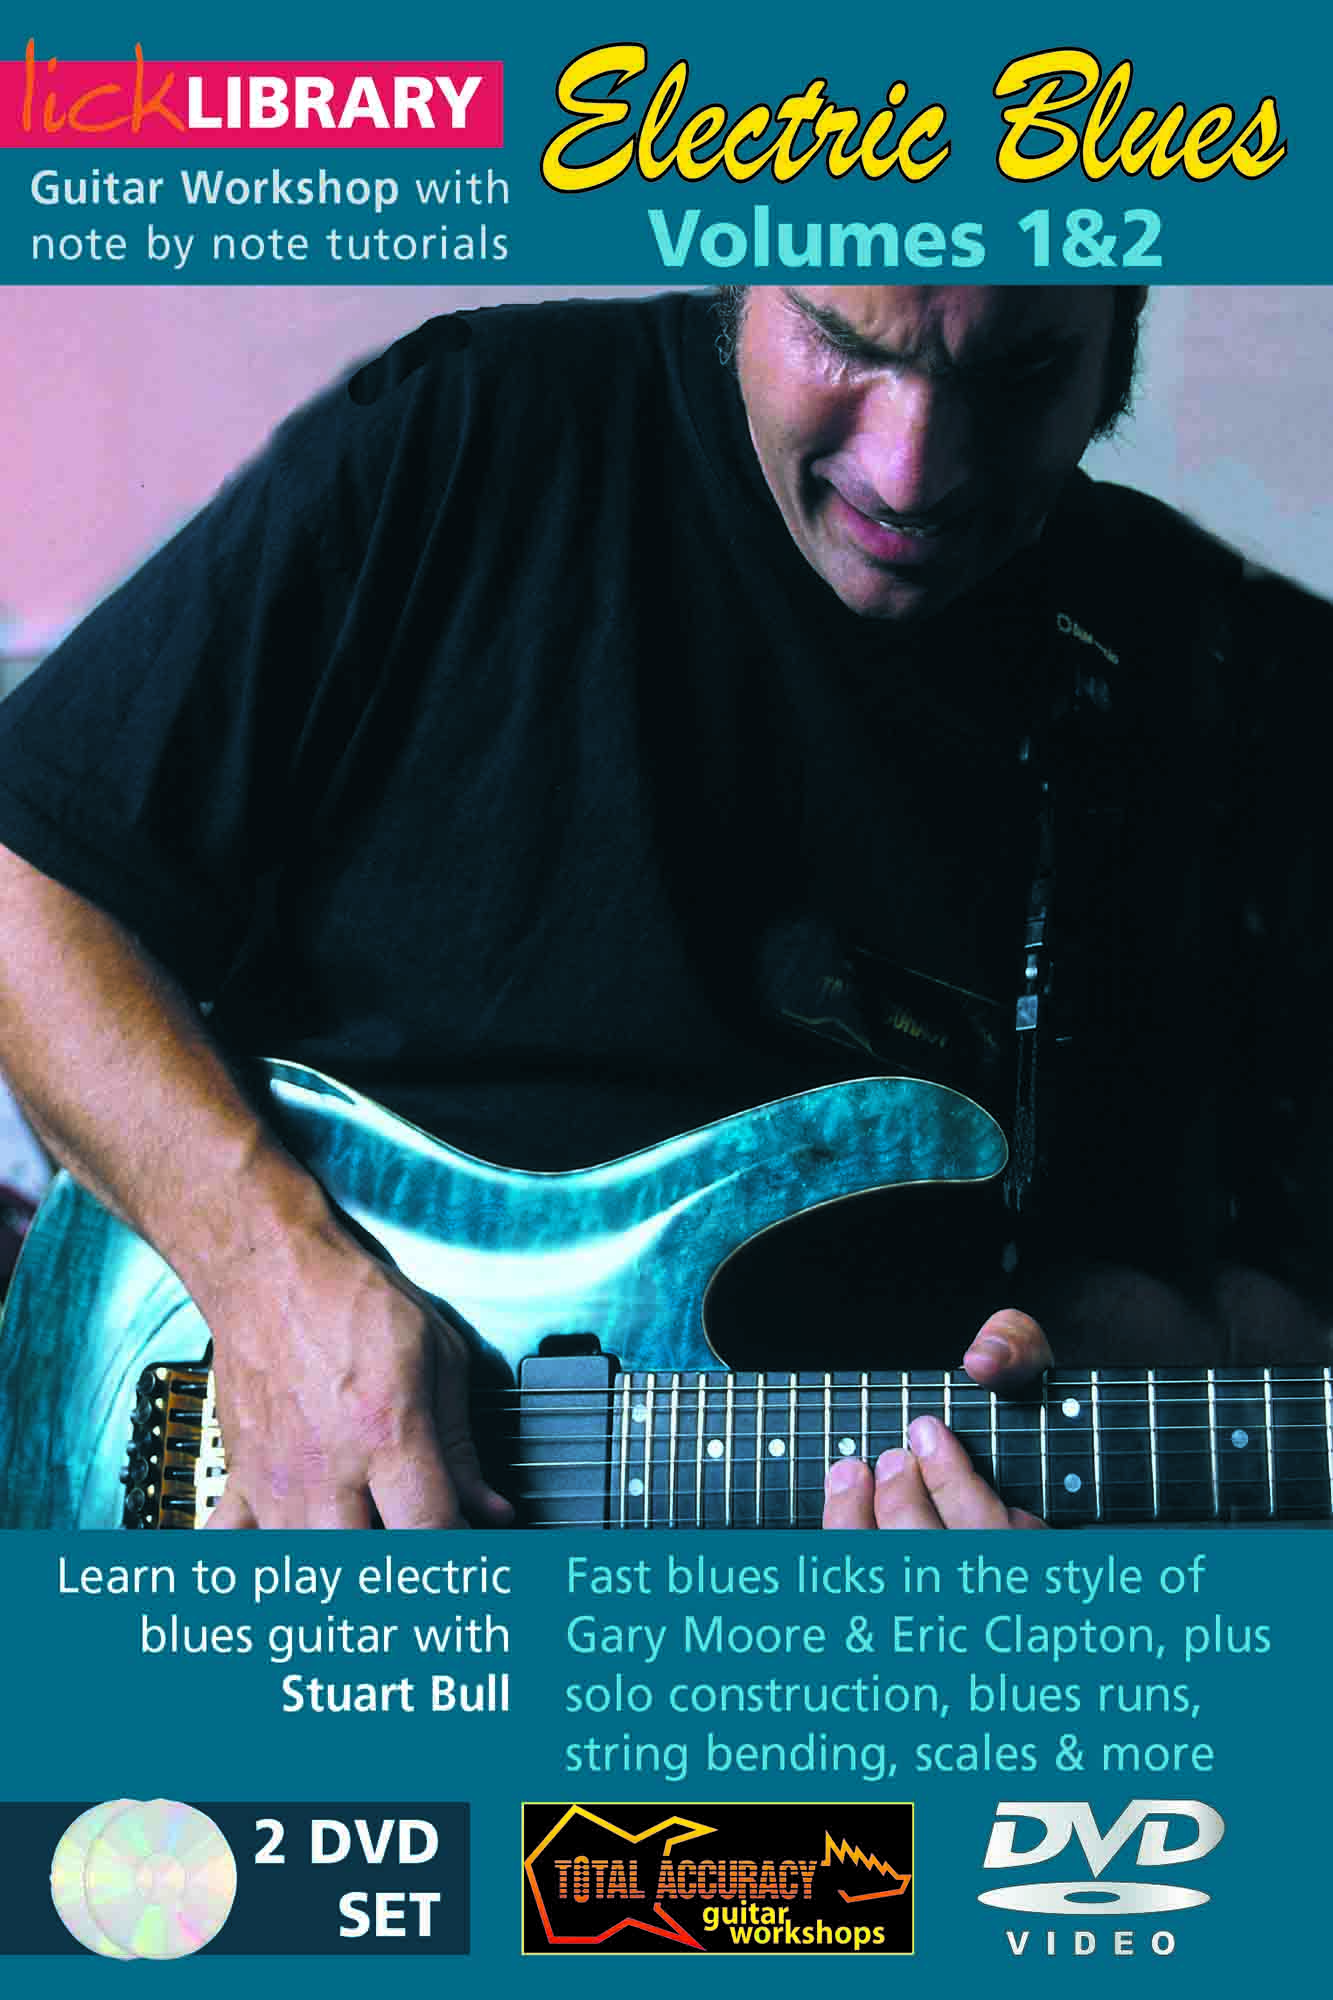 Electric Blues Volumes 1 & 2